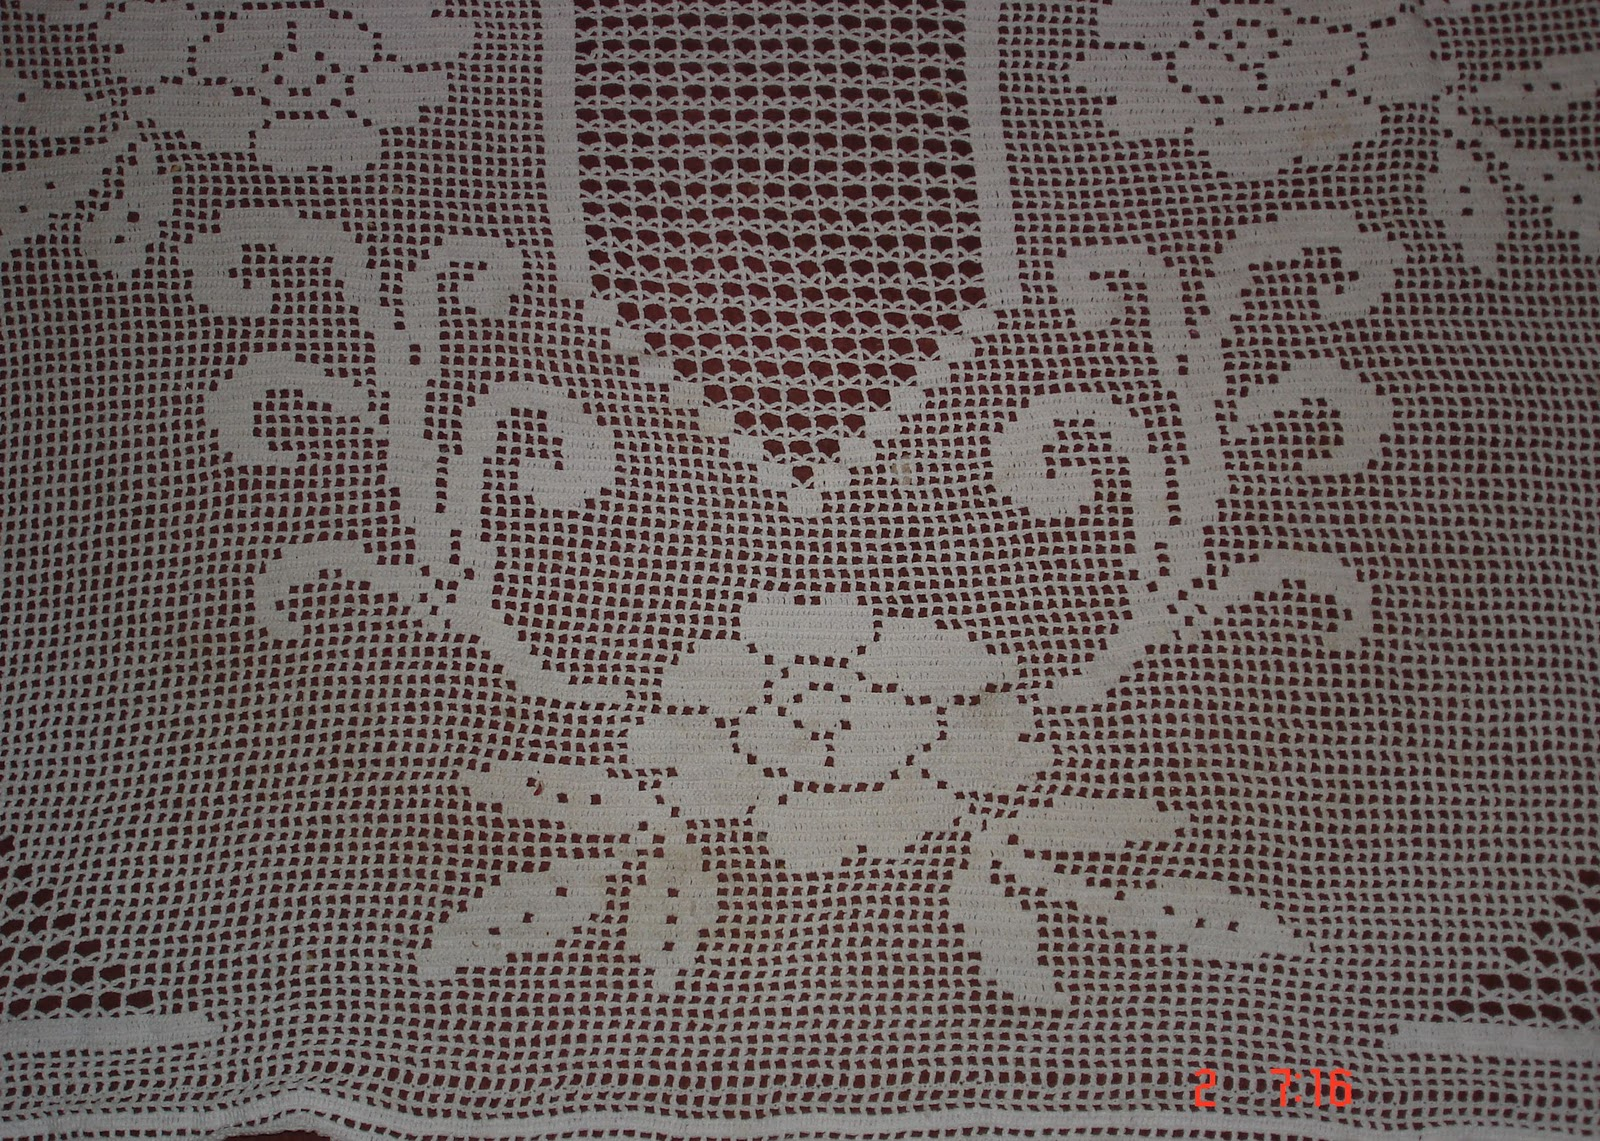 Free Filet Crochet Patterns : FILET CROCHET ROSE TABLECLOTH PATTERN - Crochet and Knitting Patterns